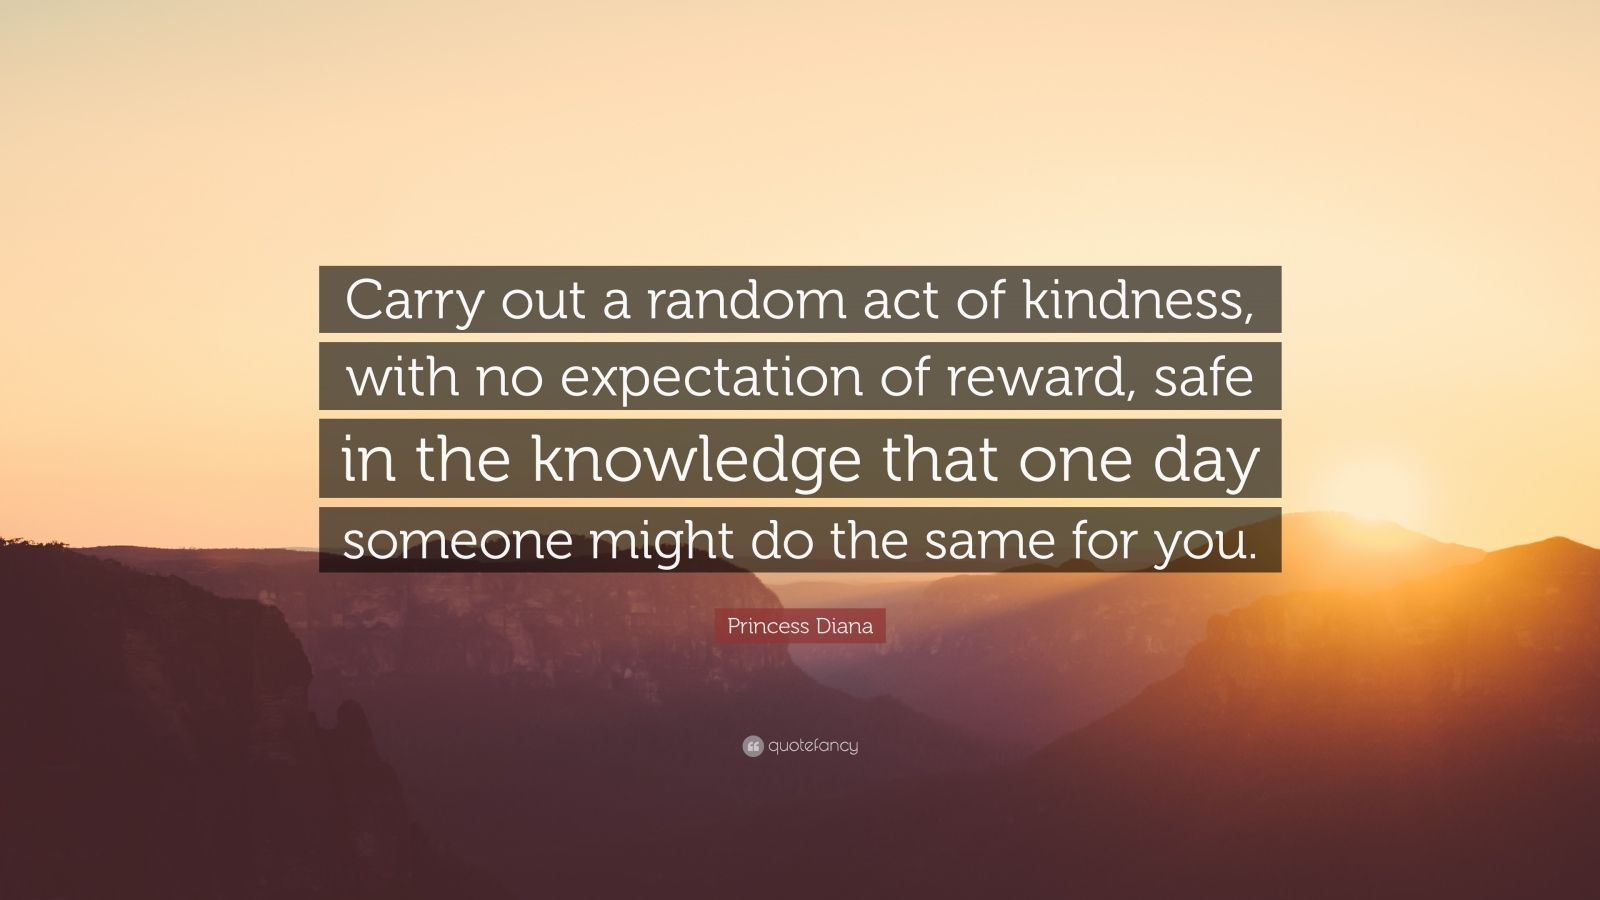 a random act of kindness essay Free random acts of kindness papers, essays, and research papers.